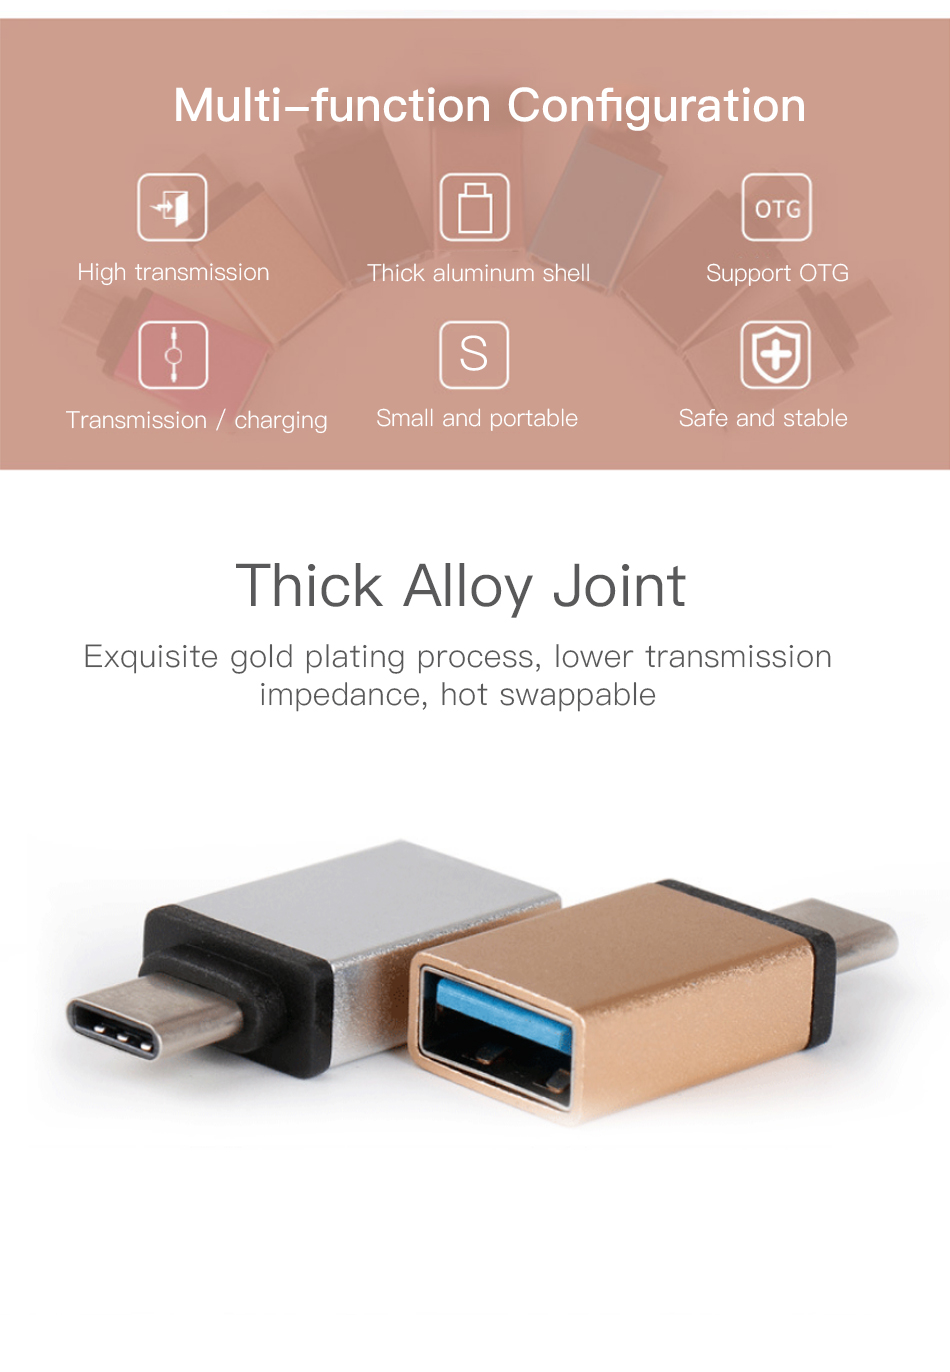 !ACCEZZ USB OTG Adapter Type C To USB Flash Converter For One Plus 5 For LG G5 G6 Xiaomi Mi 5 6 8 Samsung Galaxy S8 S9 Data Sync (2)